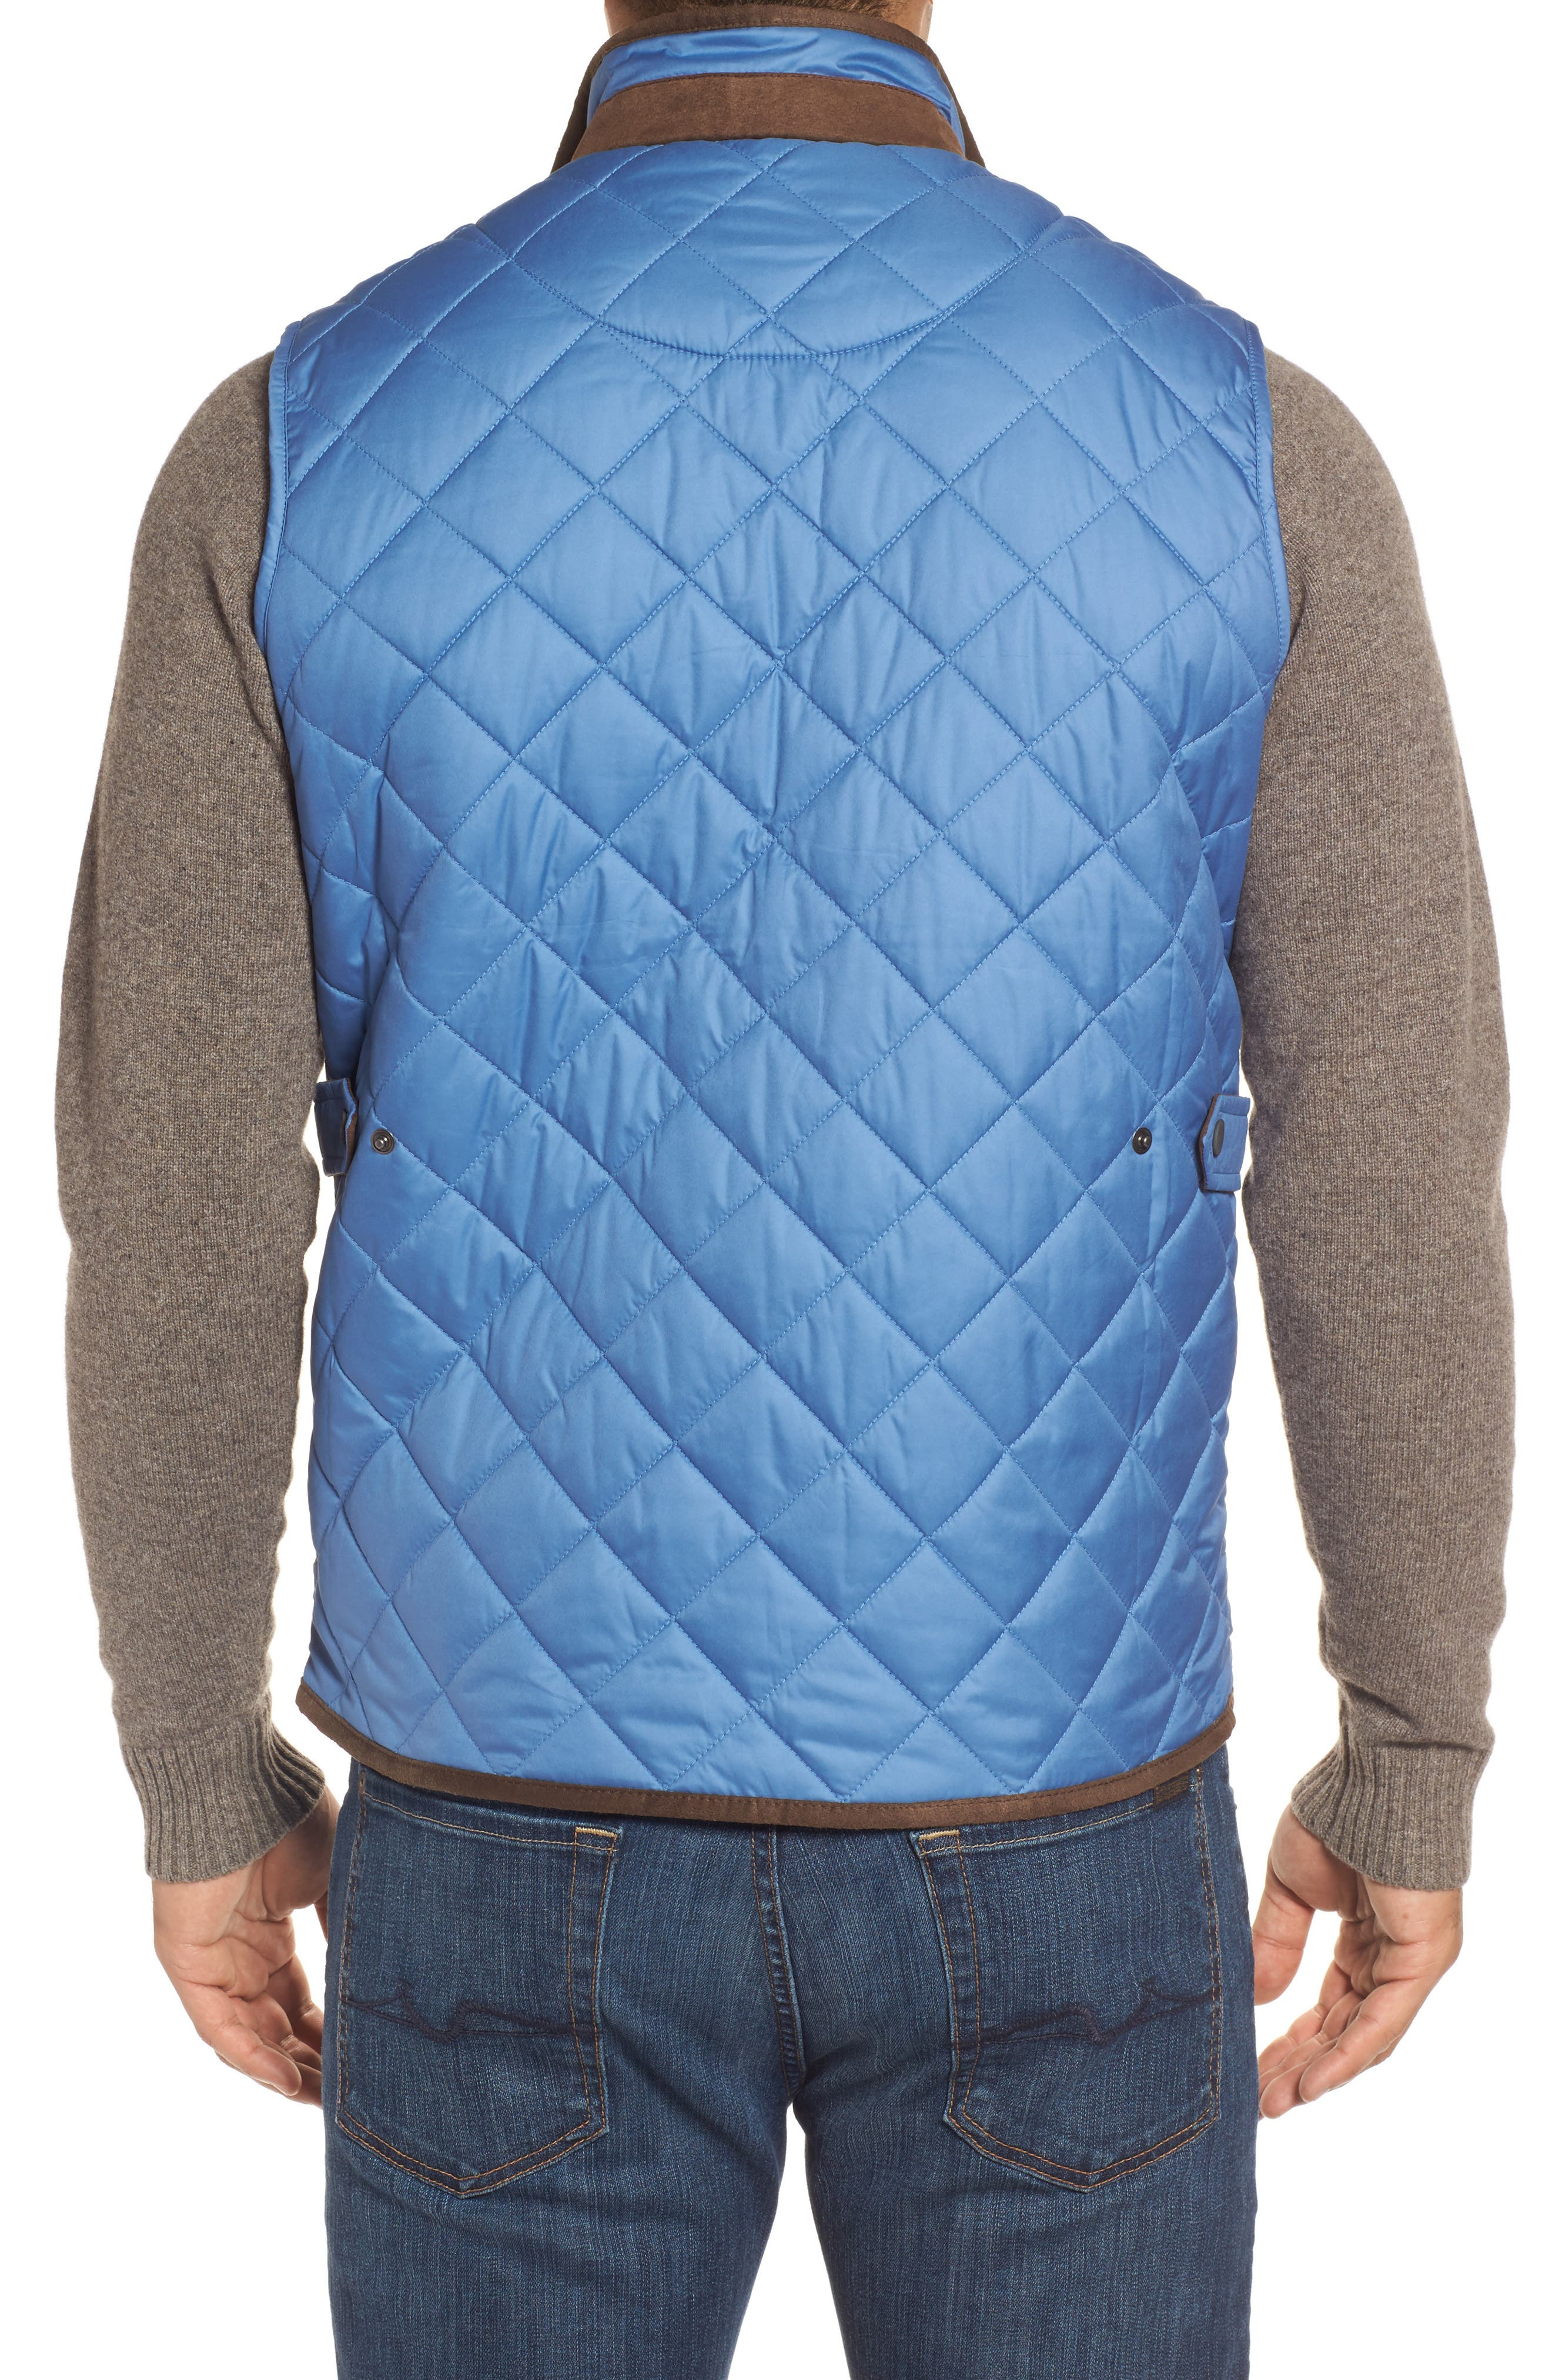 Essex Quilted Vest,                             Alternate thumbnail 2, color,                             Moon Blue